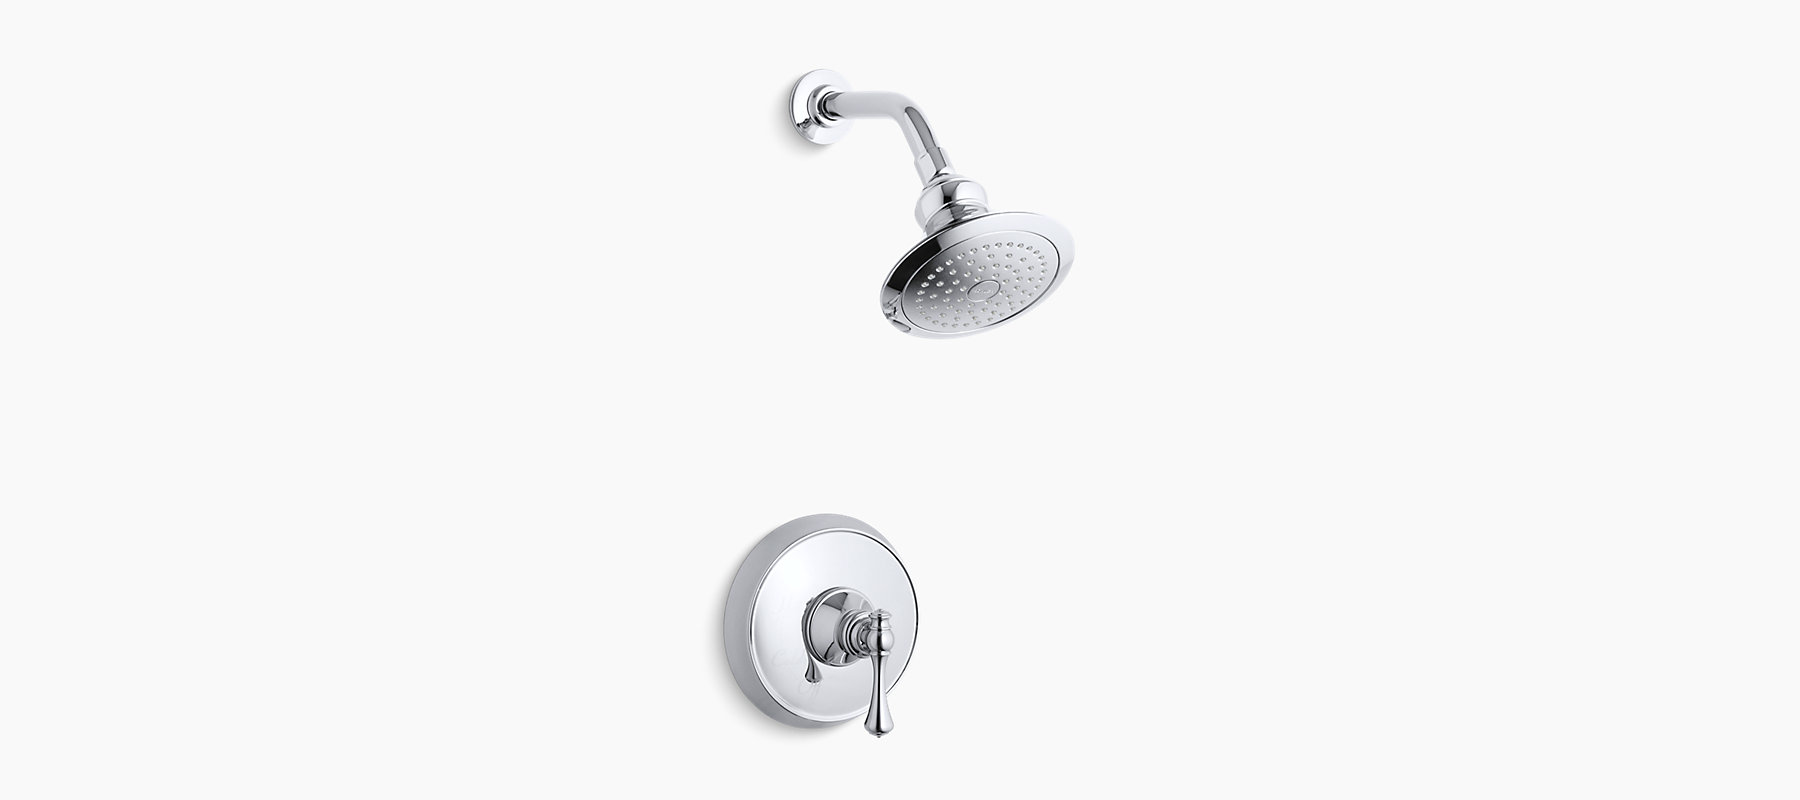 K Ts16114 4a Revival Rite Temp Shower Valve Trim With Traditional Lever Handle And 2 5 Gpm Showerhead Kohler Canada